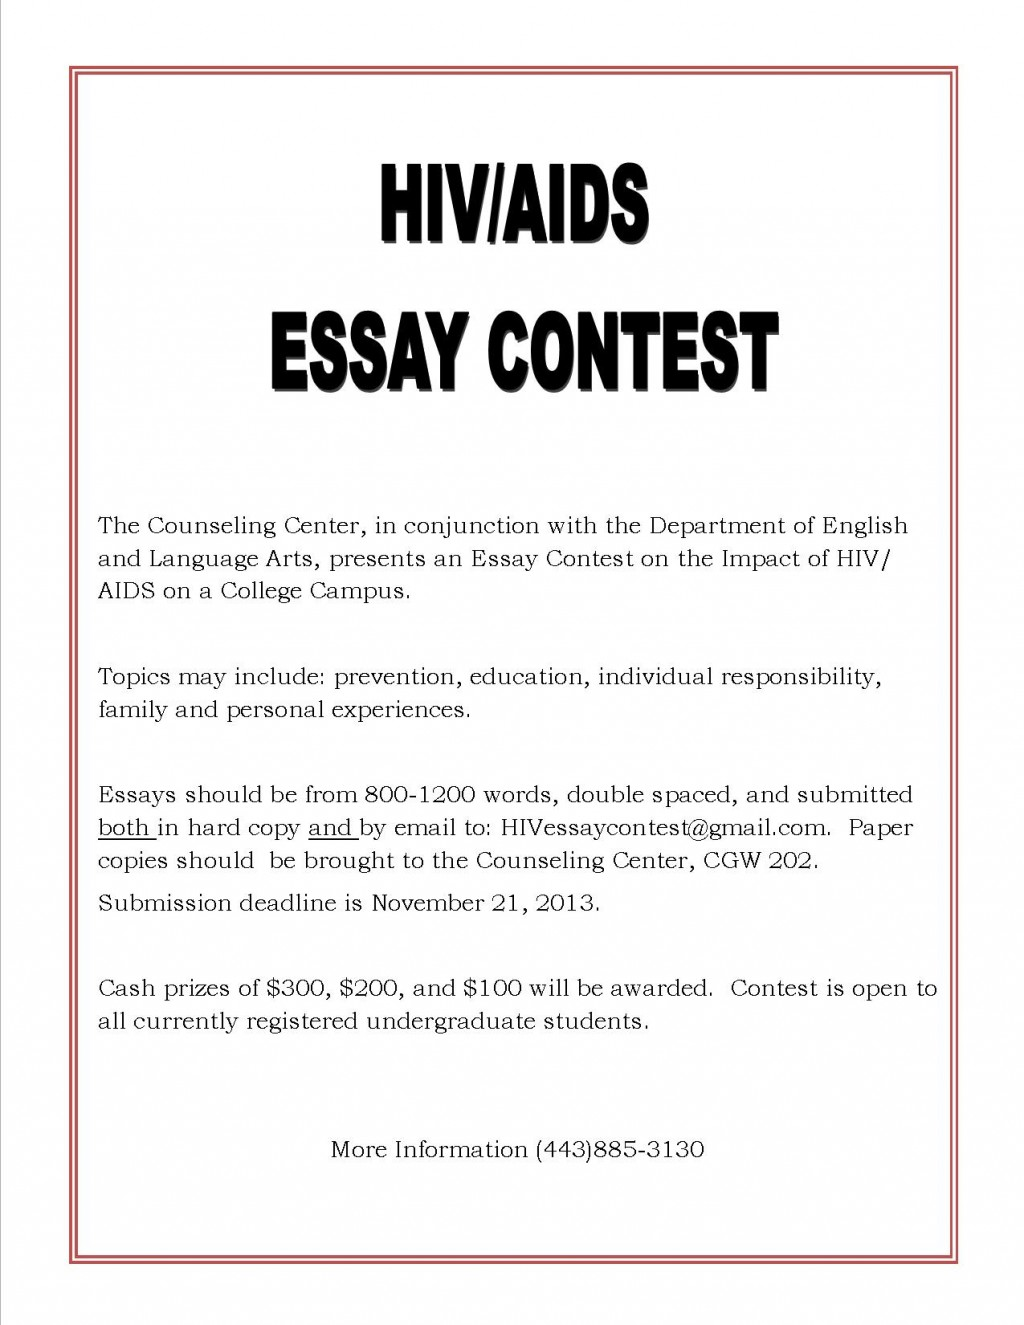 006 Essay Example Hiv Aids Essays Flyer Tamil Awareness Epidemic In Africa Hivaids On Pediatric About Research Phenomenal Conclusion Pdf Hiv/aids Topics Large